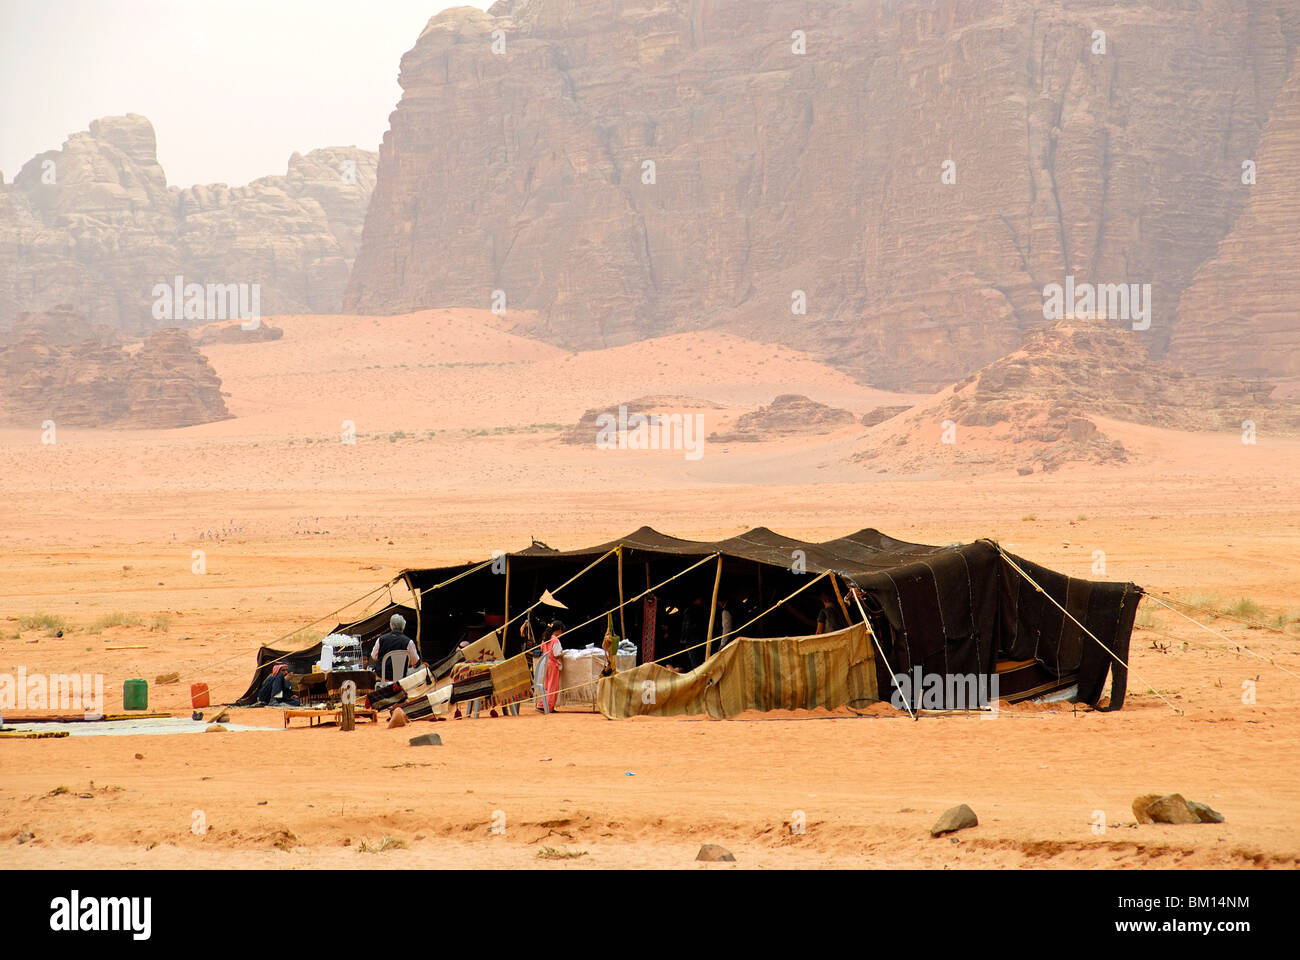 Bedouin tent Wadi Rum Jordan Asia Middle East & Bedouin tent Wadi Rum Jordan Asia Middle East Stock Photo ...